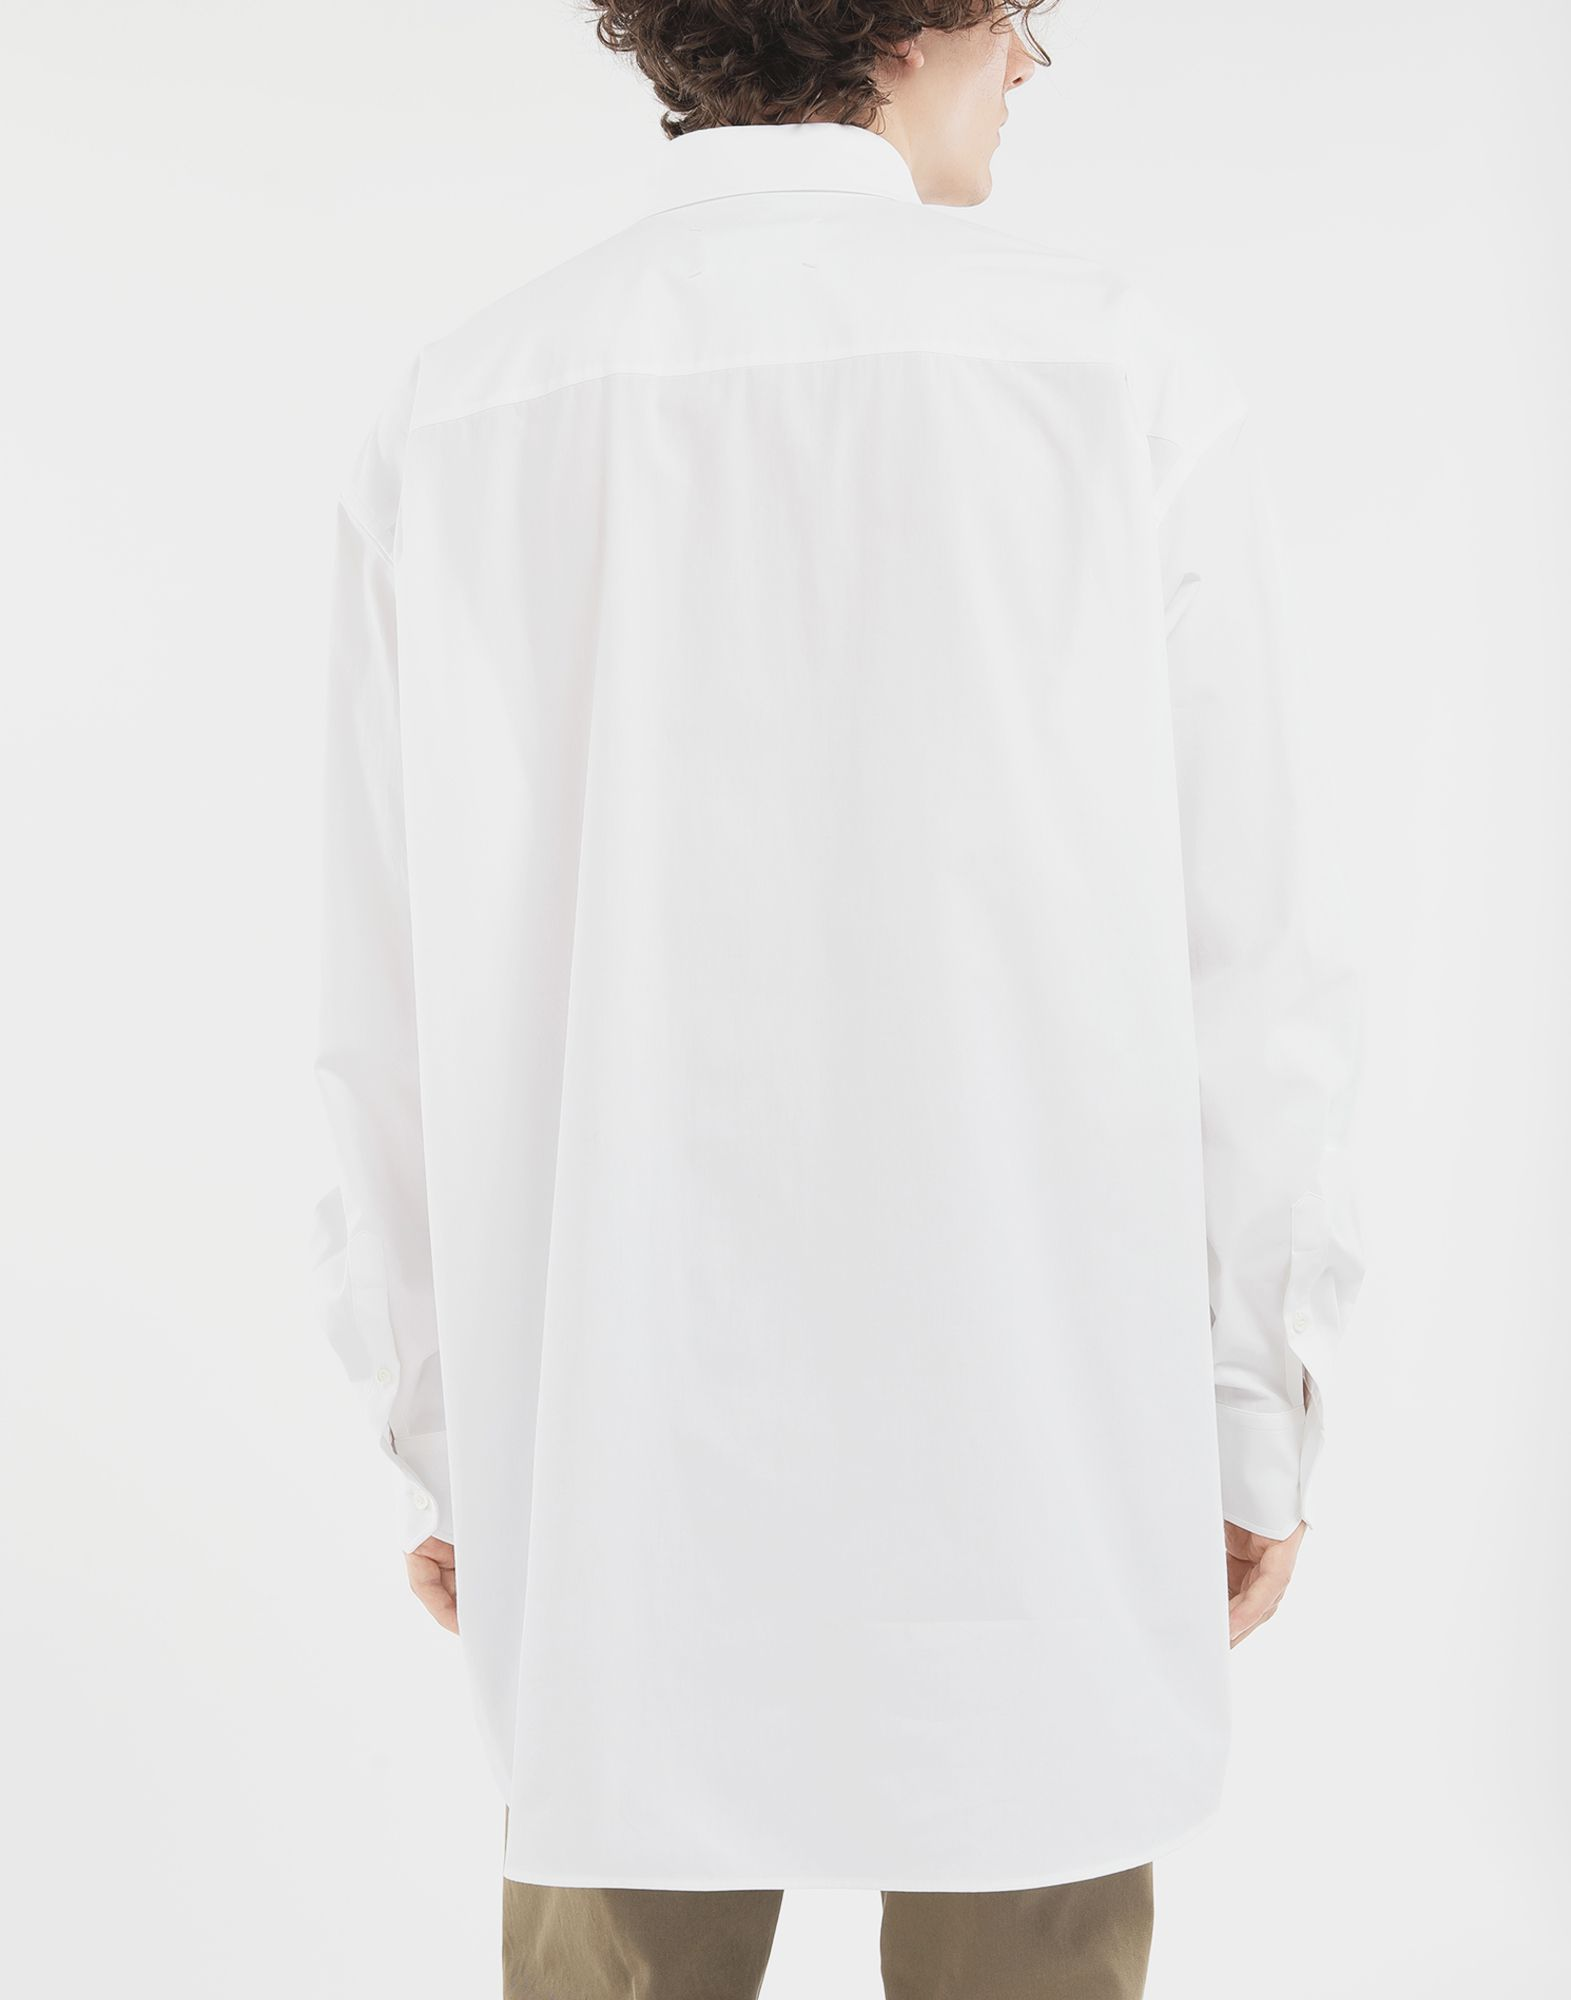 MAISON MARGIELA Oversized shirt Long sleeve shirt Man e